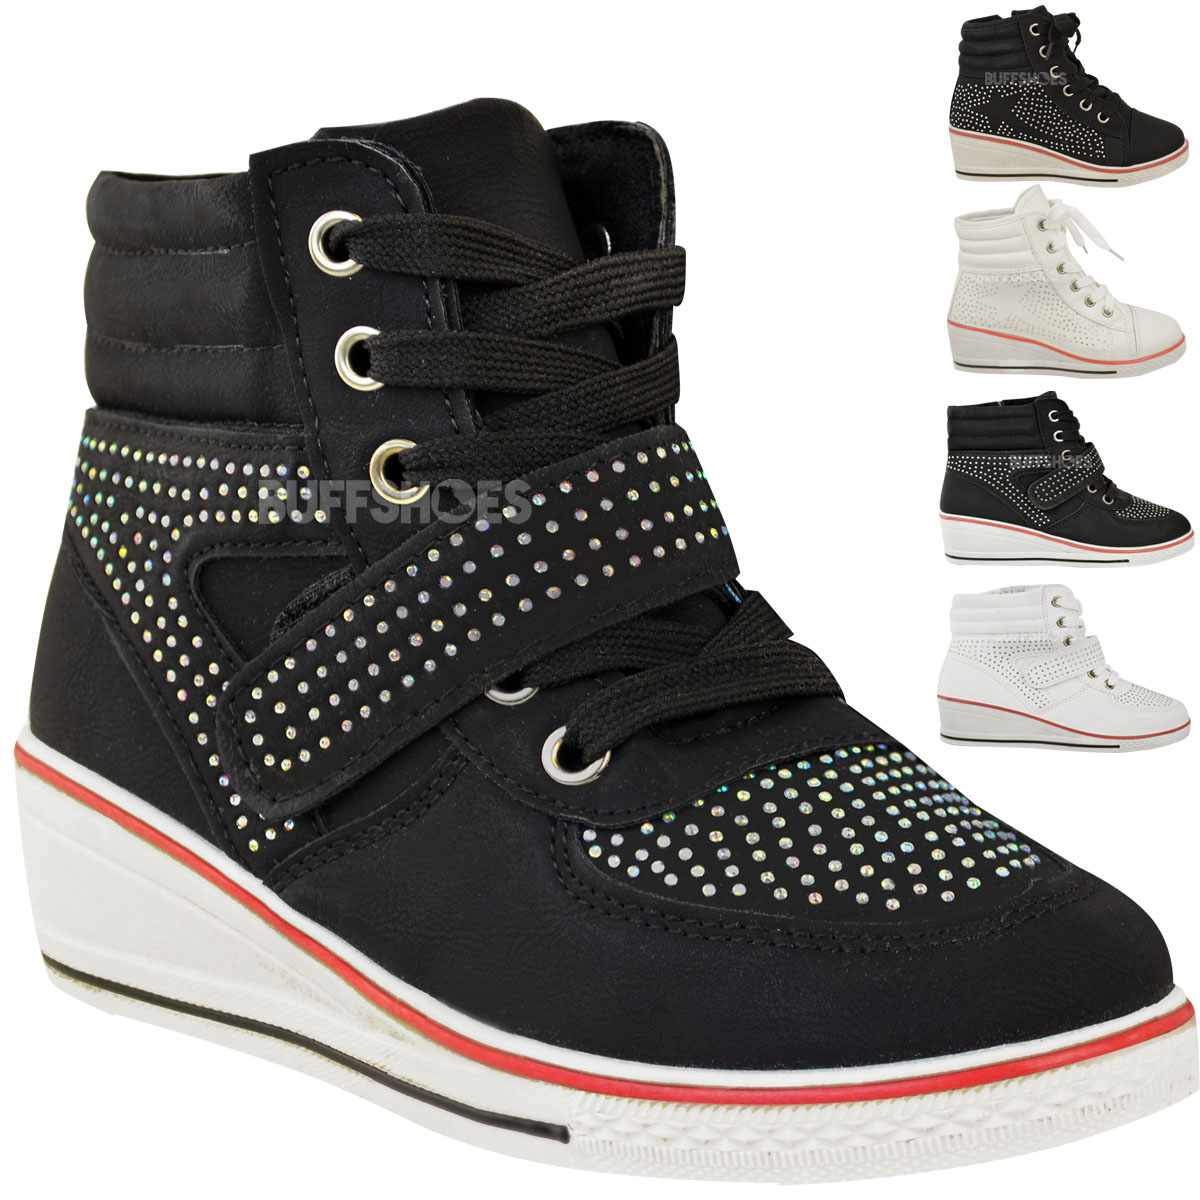 girls kids wedge trainers lace up pumps ankle boots